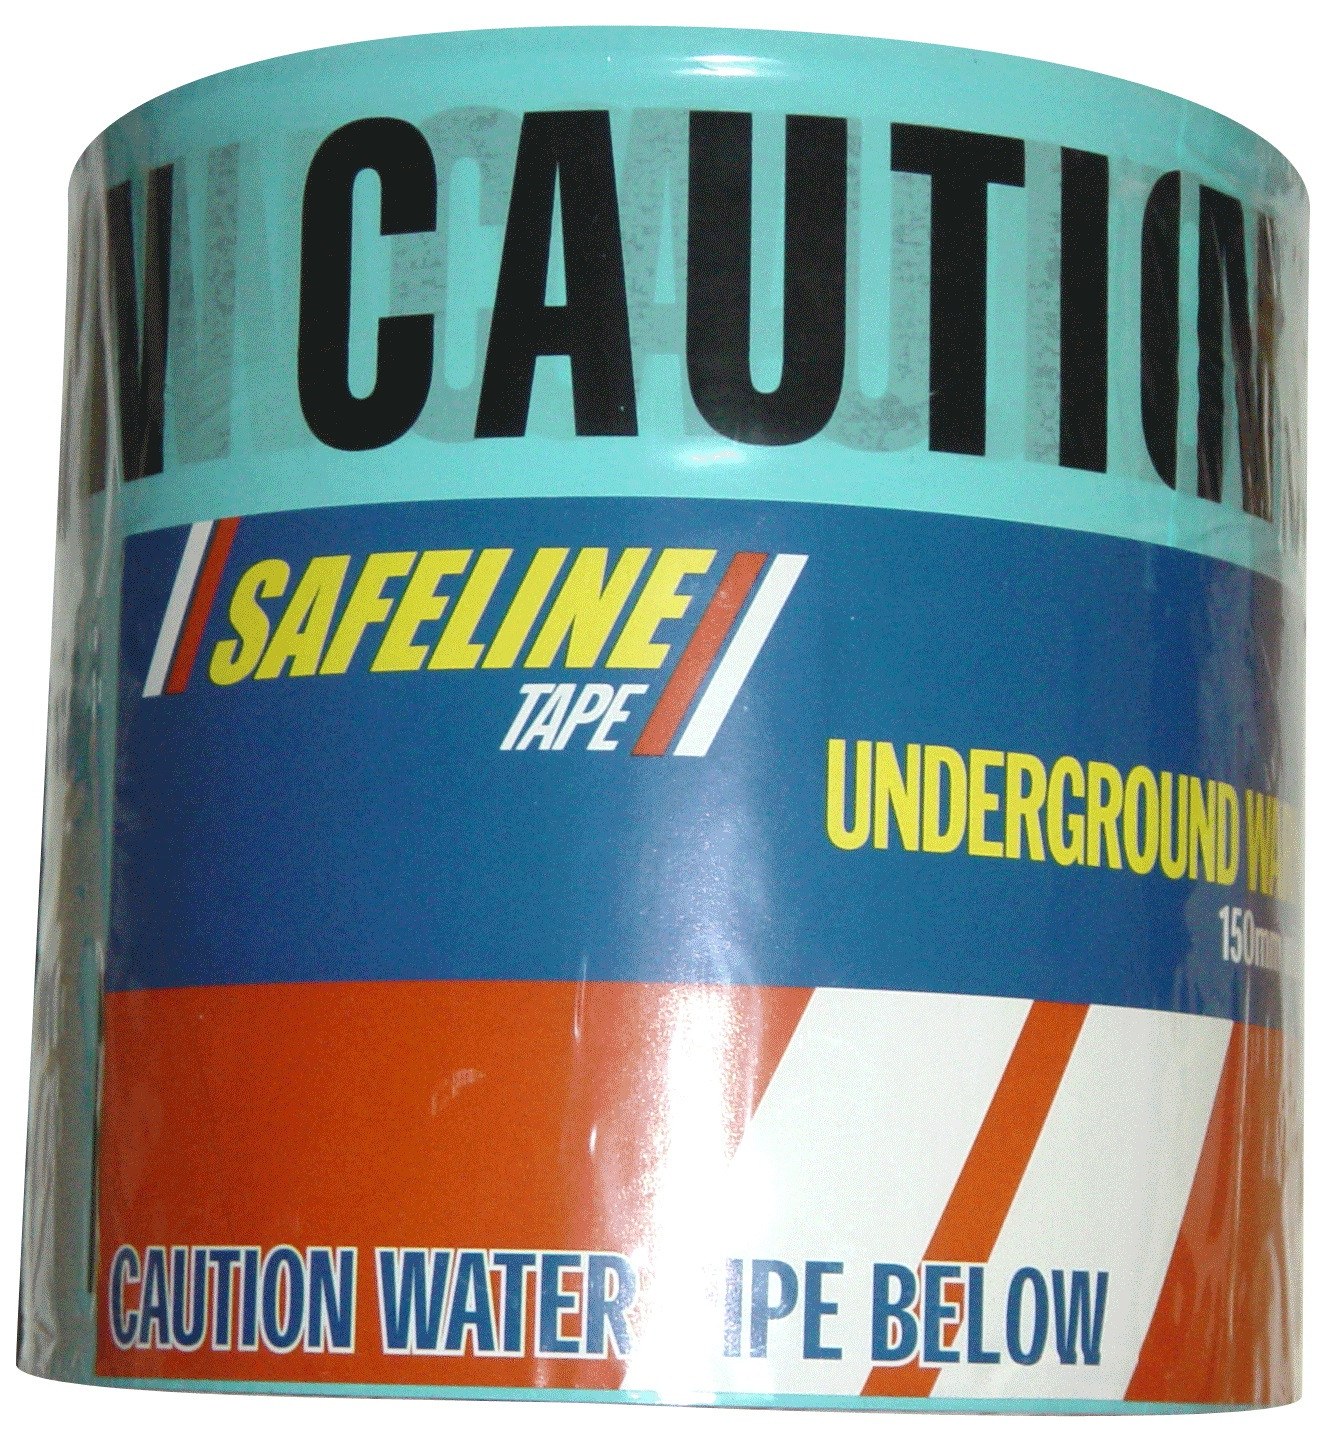 Caution Water Pipe Below Warning Tape x 150m